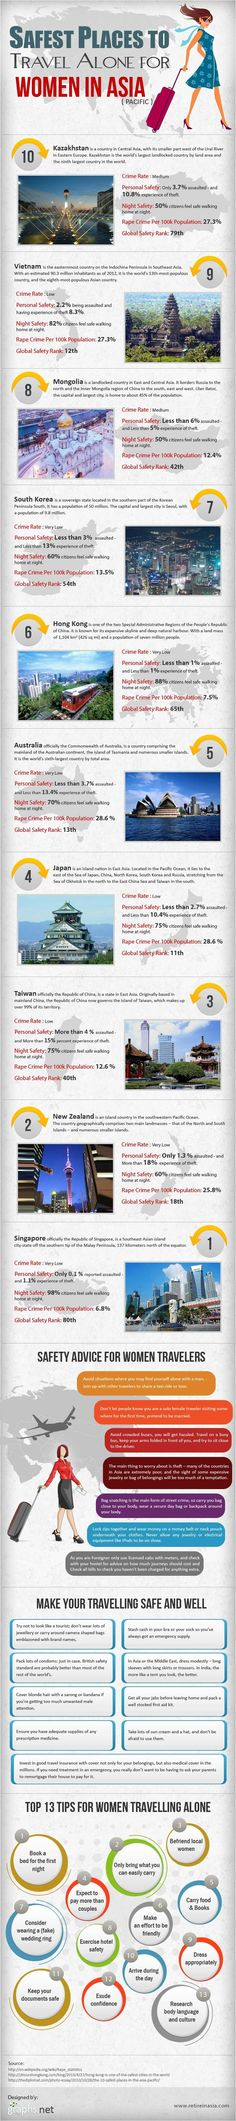 Top 10 safest countries in the world in 2013 and Top 10 safest countries for women - Minh Anh Travel blog